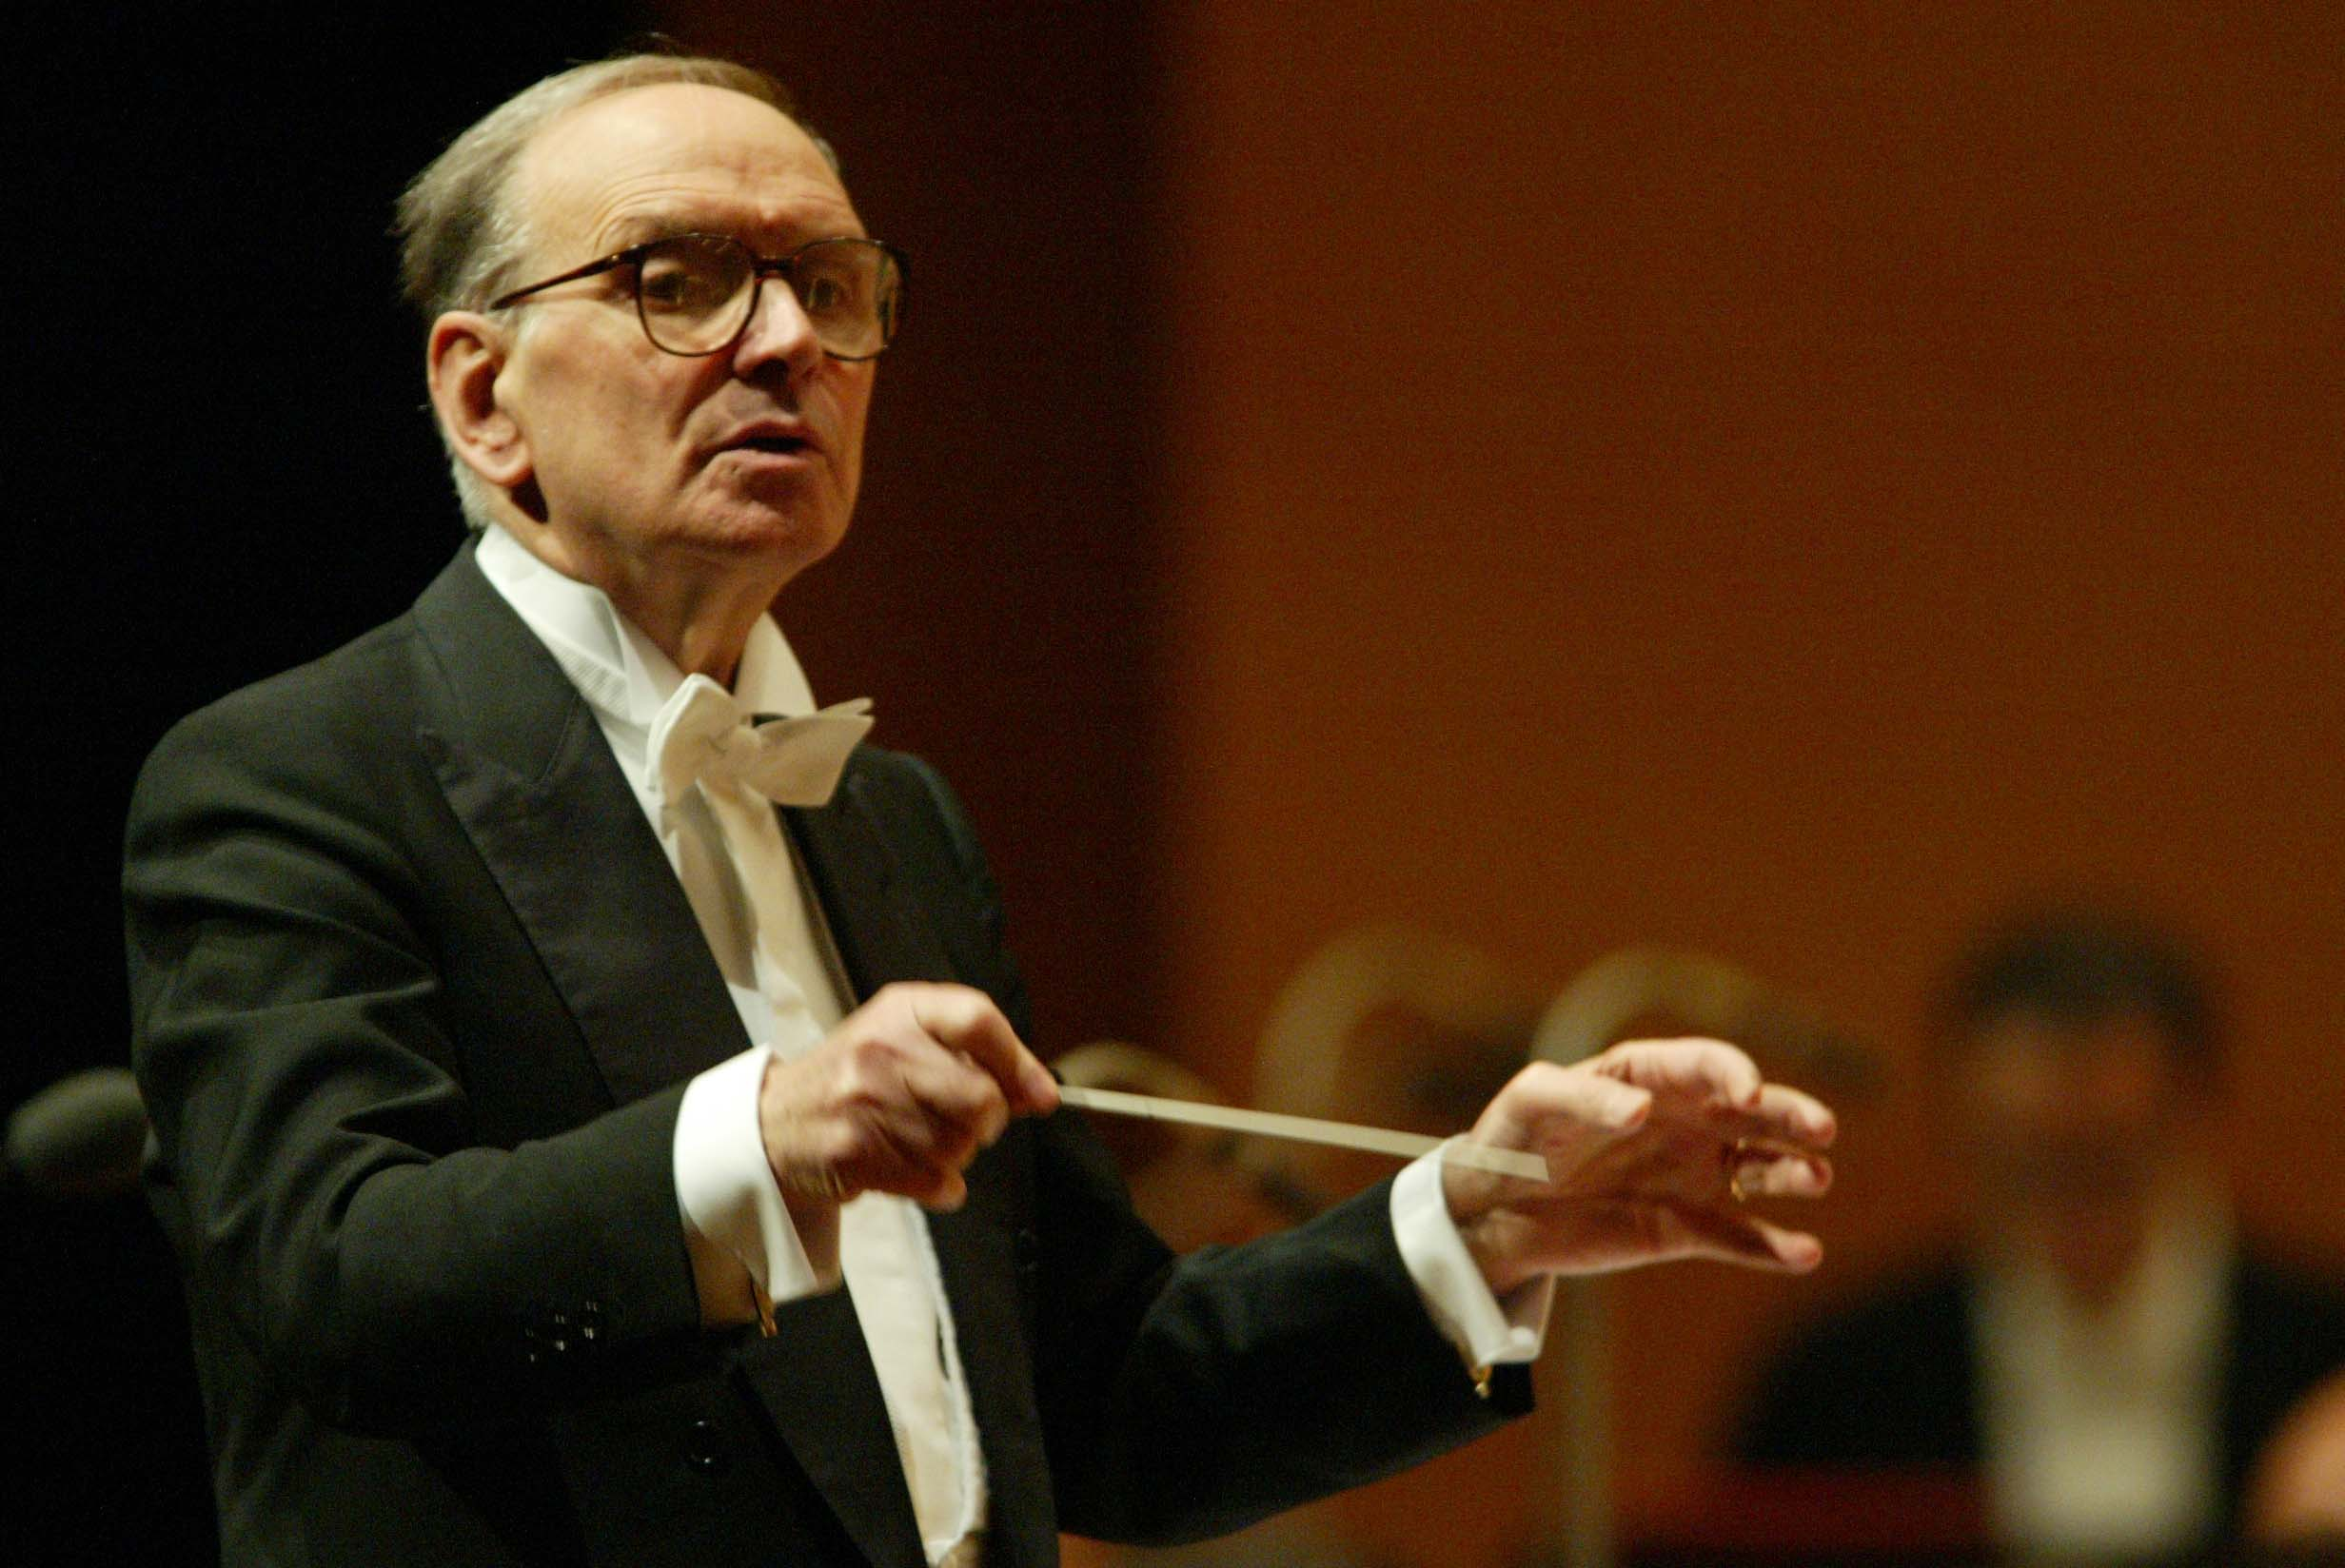 Ennio-Morricone-Conducts